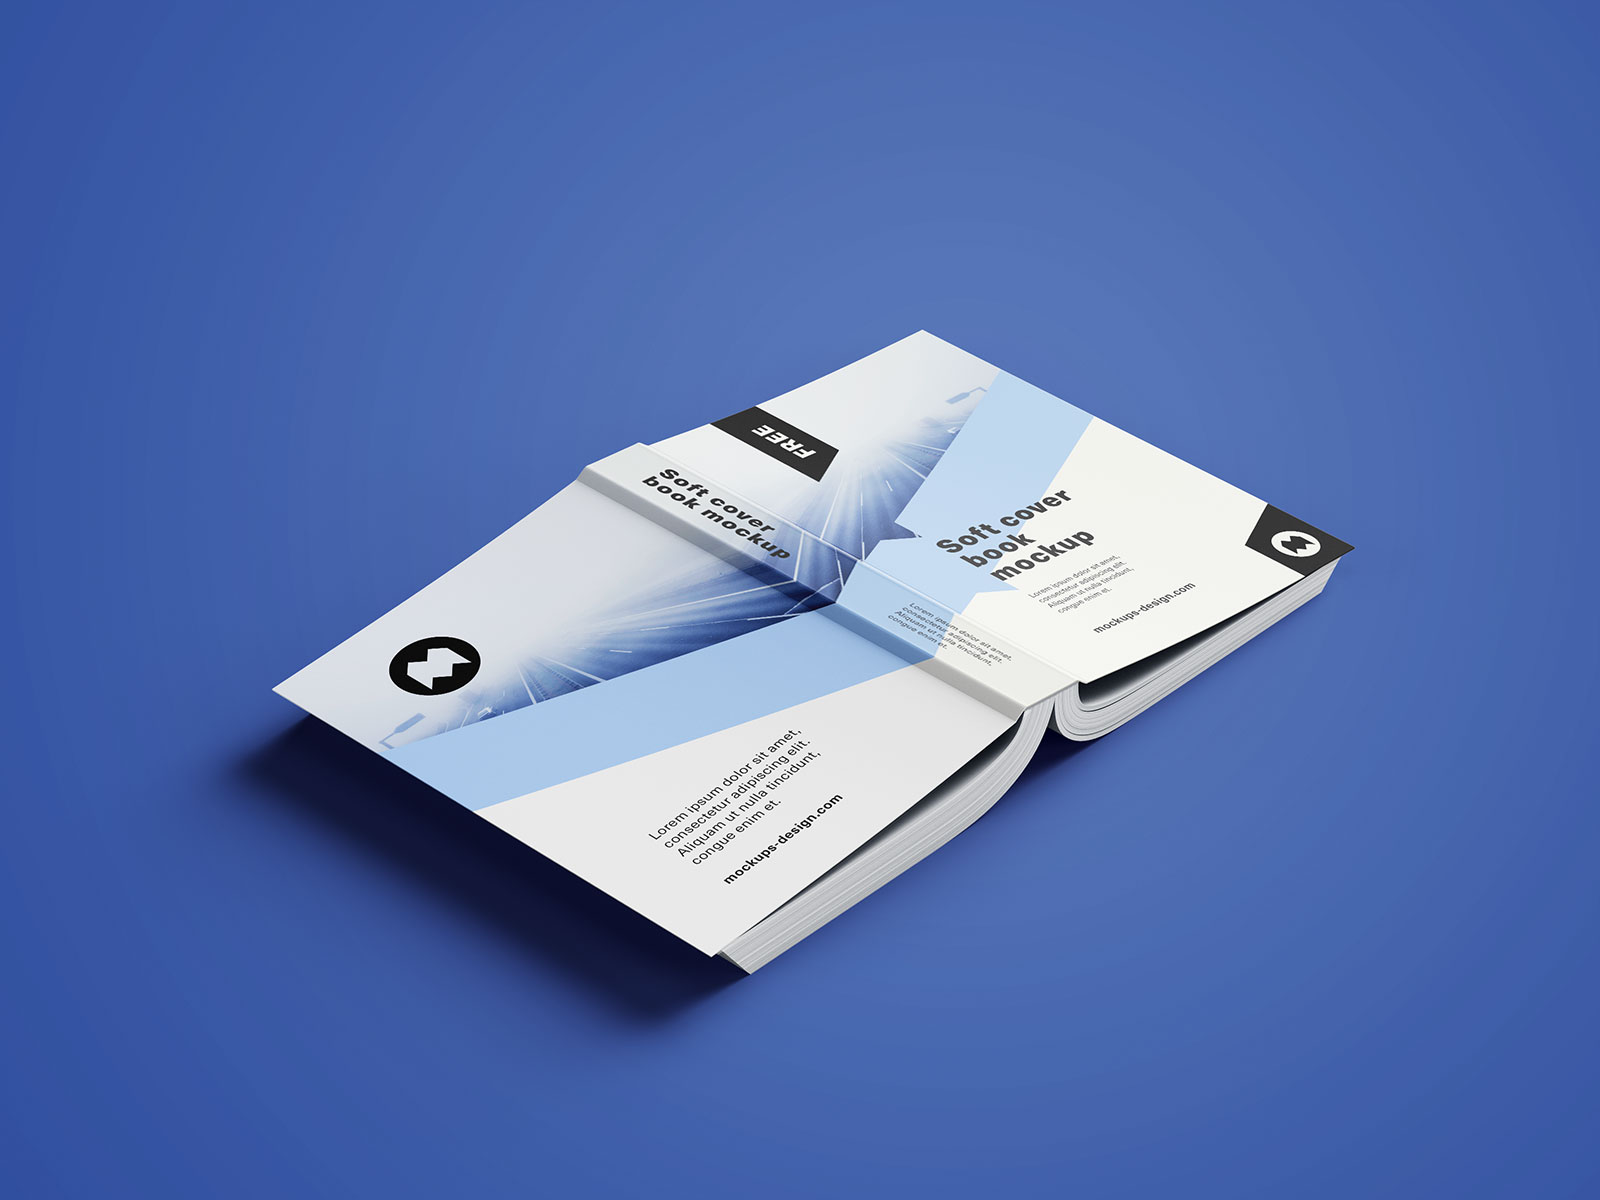 Softcover Book Mockup PSD (11)